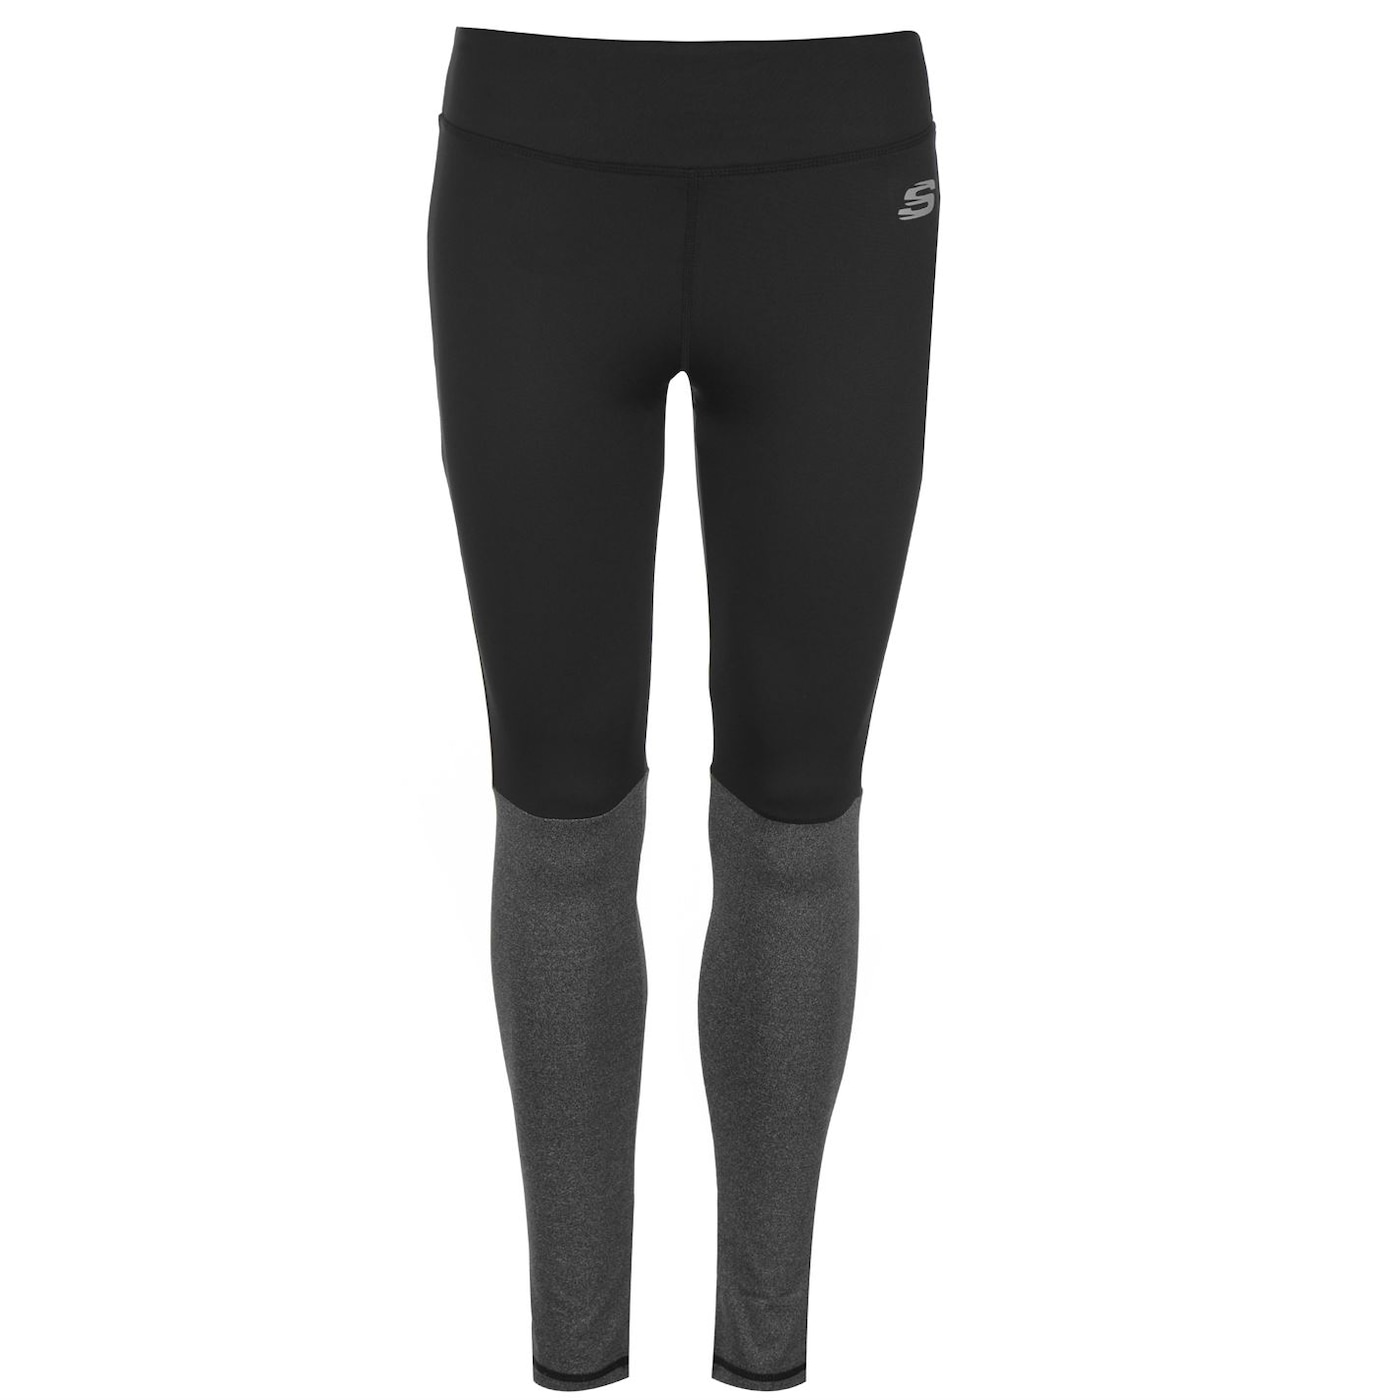 Skechers C And S Tights Ladies